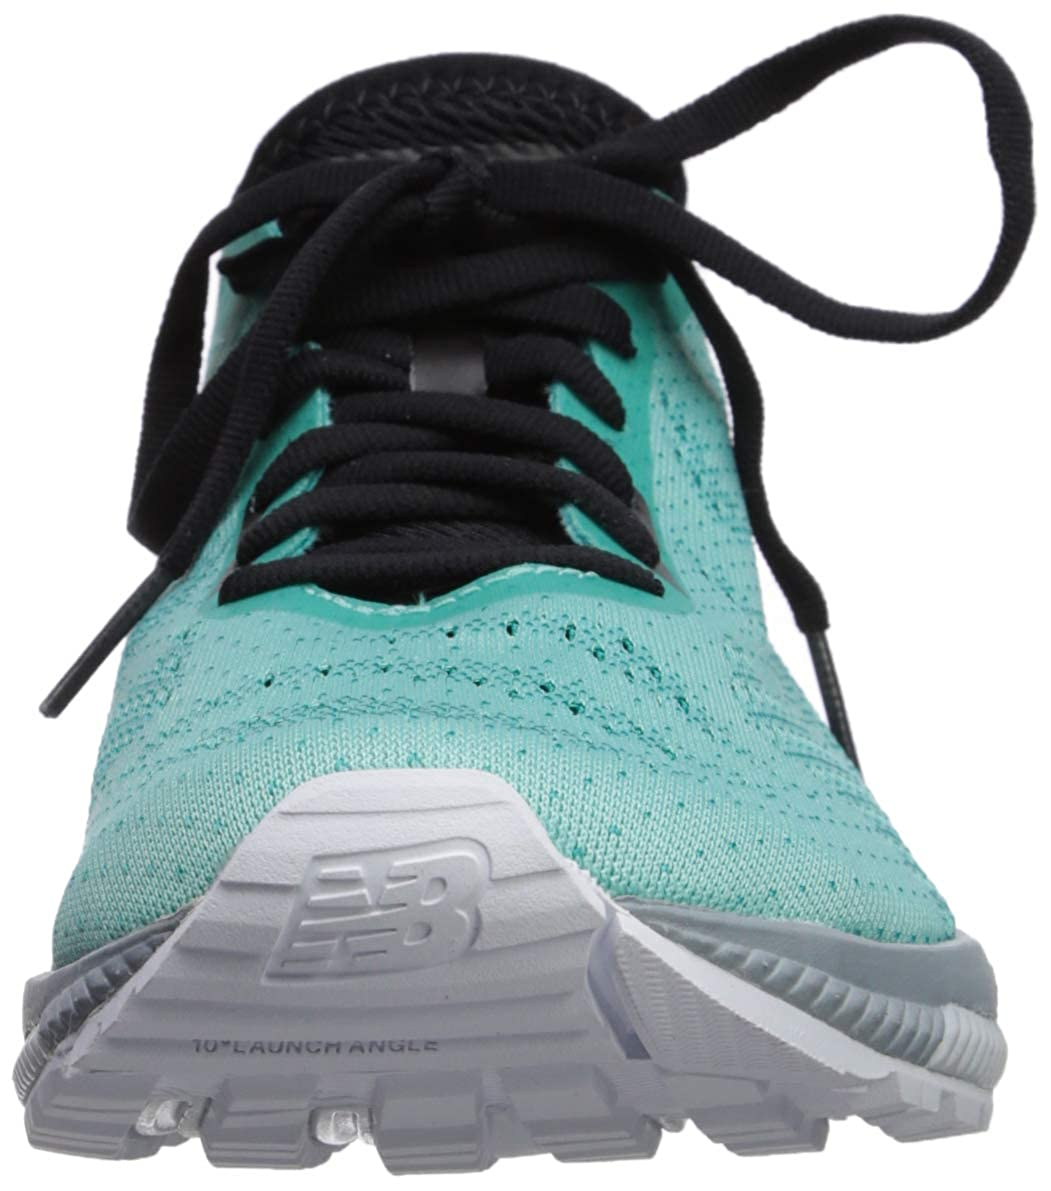 New New New Balance Fuel Cell Impulse Scarpe Running Donna | ecologico